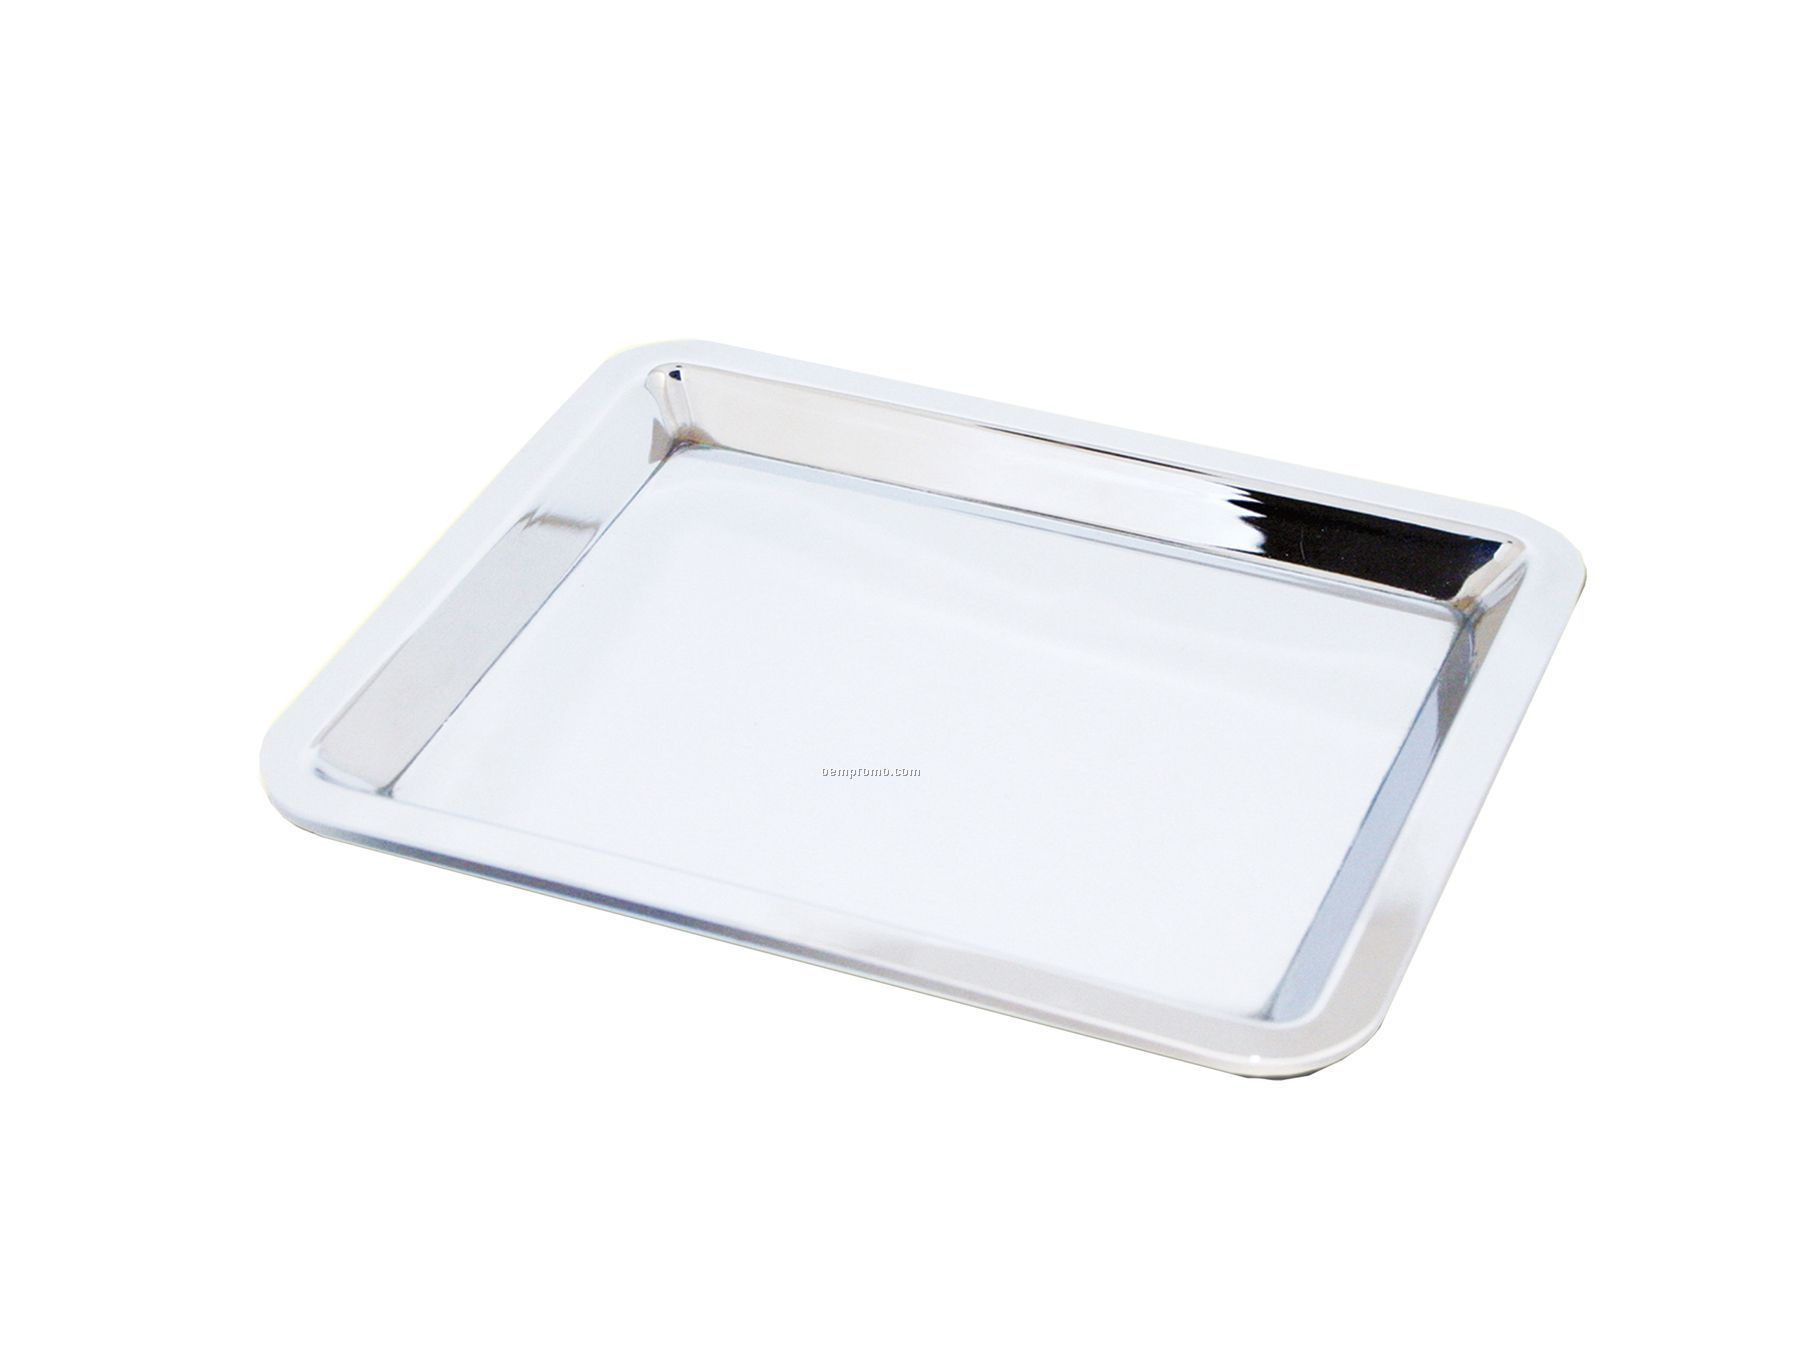 Http Www Oempromo Com Product Trays S Small Tray 246161 Htm